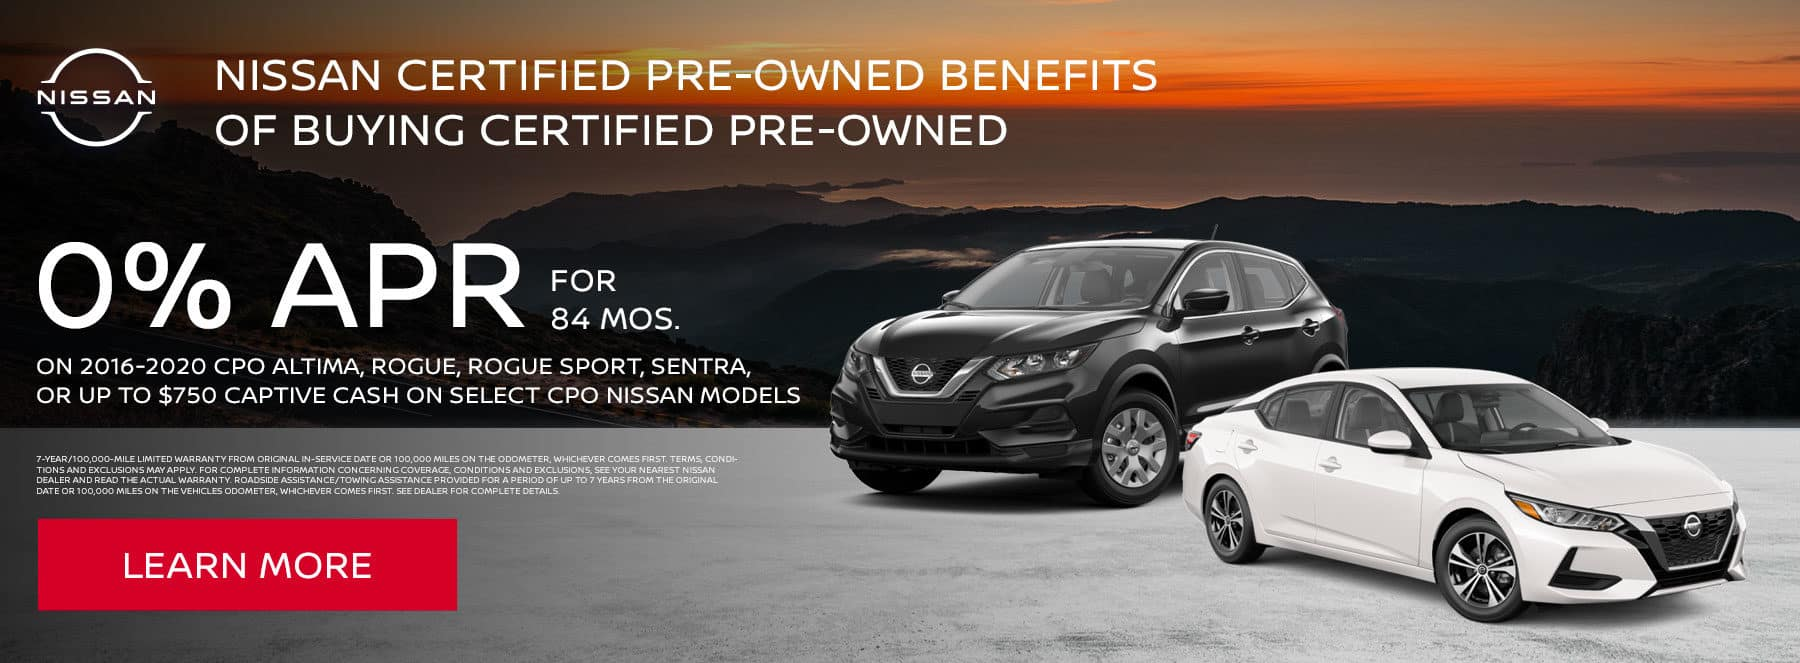 NISSAN CERTIFIED Pre-Owned BENEFITS OF BUYING CERTIFIED PRE-OWNED